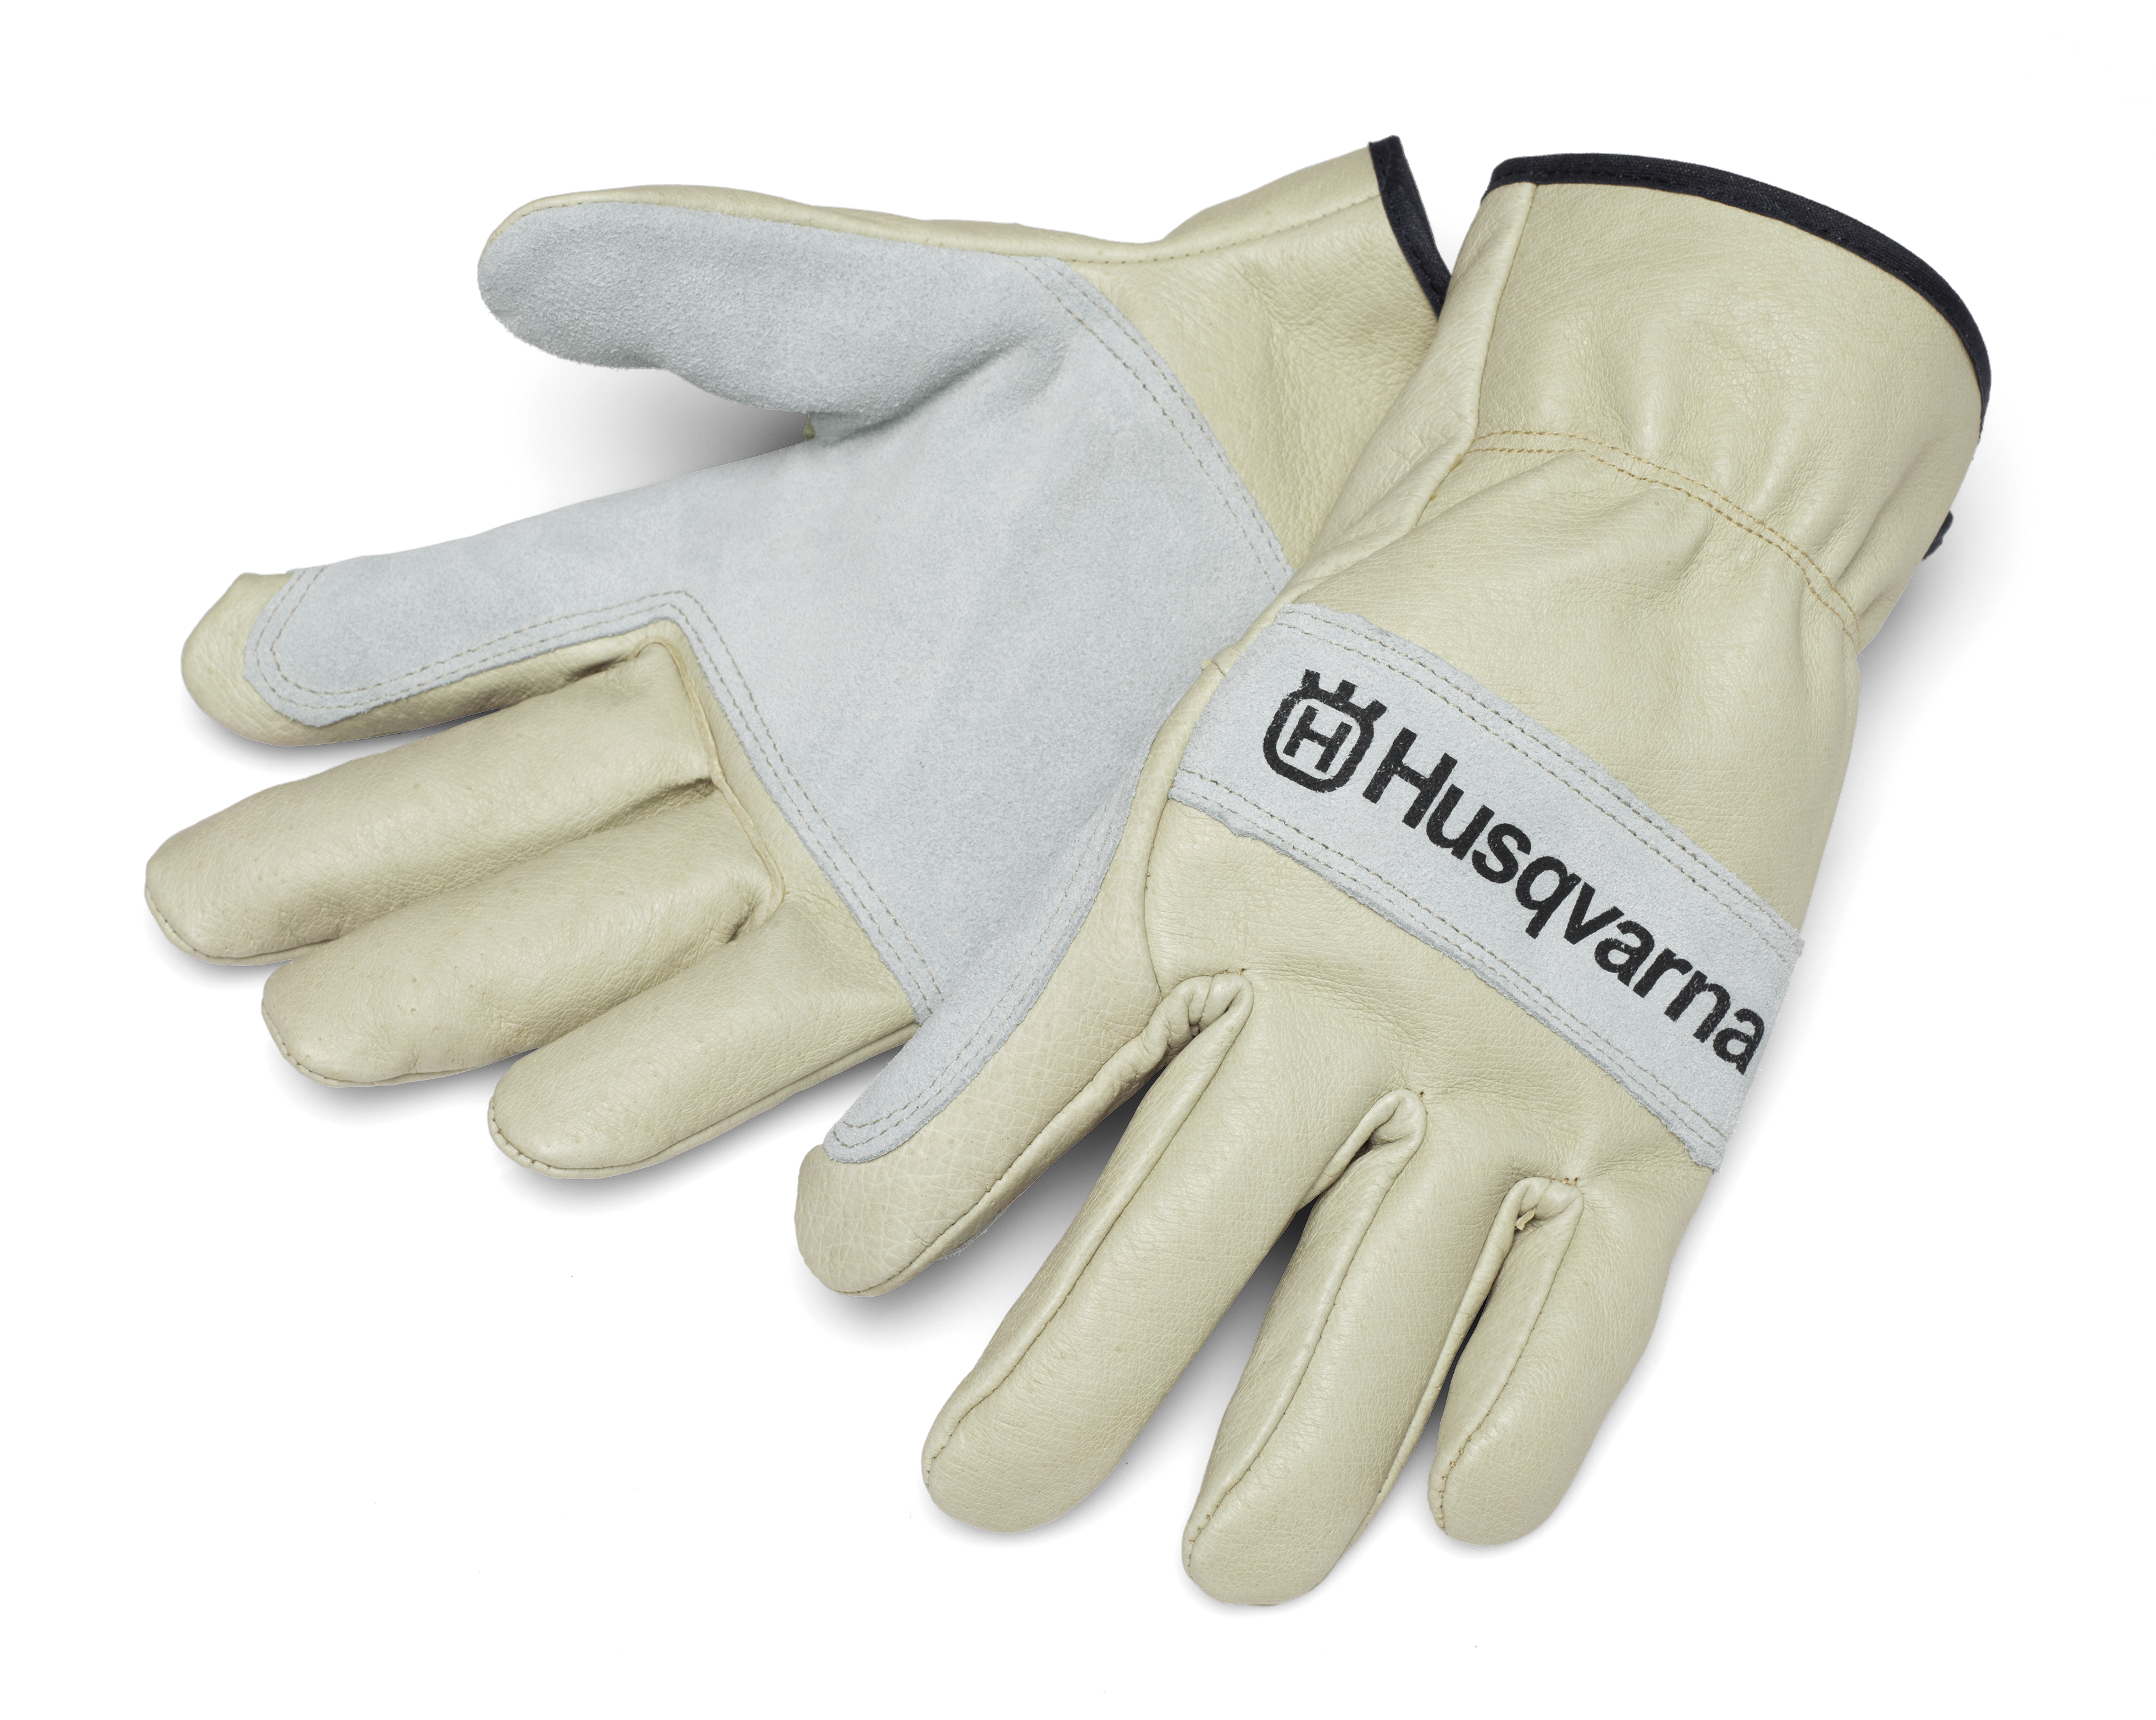 Image for Xtreme Duty Work Gloves                                                                                                          from HusqvarnaB2C